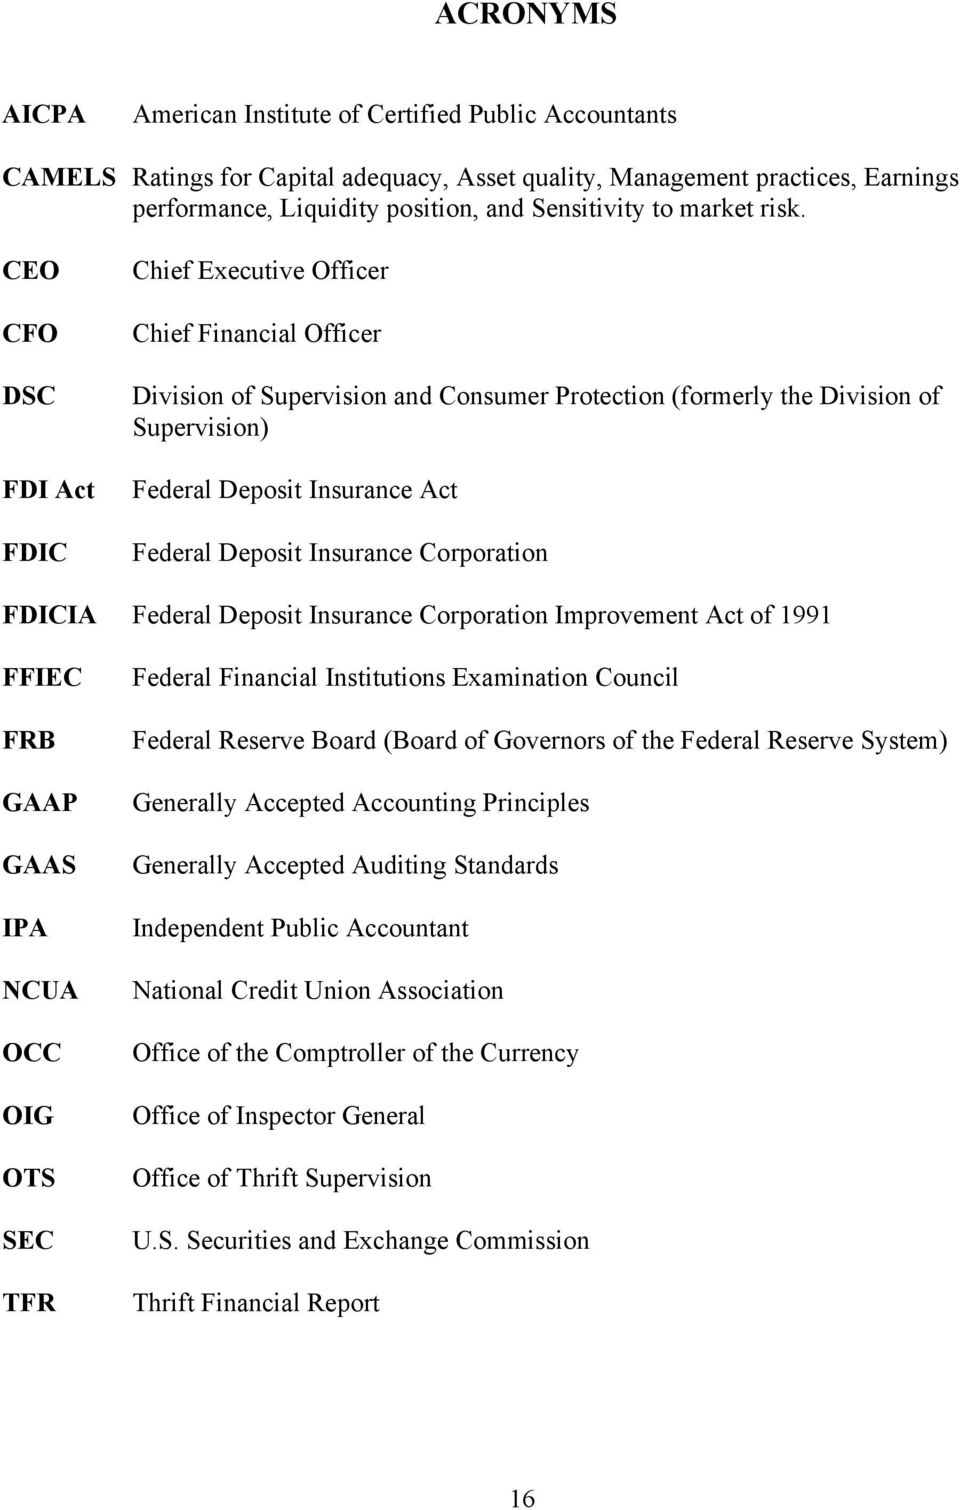 CEO CFO DSC FDI Act FDIC Chief Executive Officer Chief Financial Officer Division of Supervision and Consumer Protection (formerly the Division of Supervision) Federal Deposit Insurance Act Federal